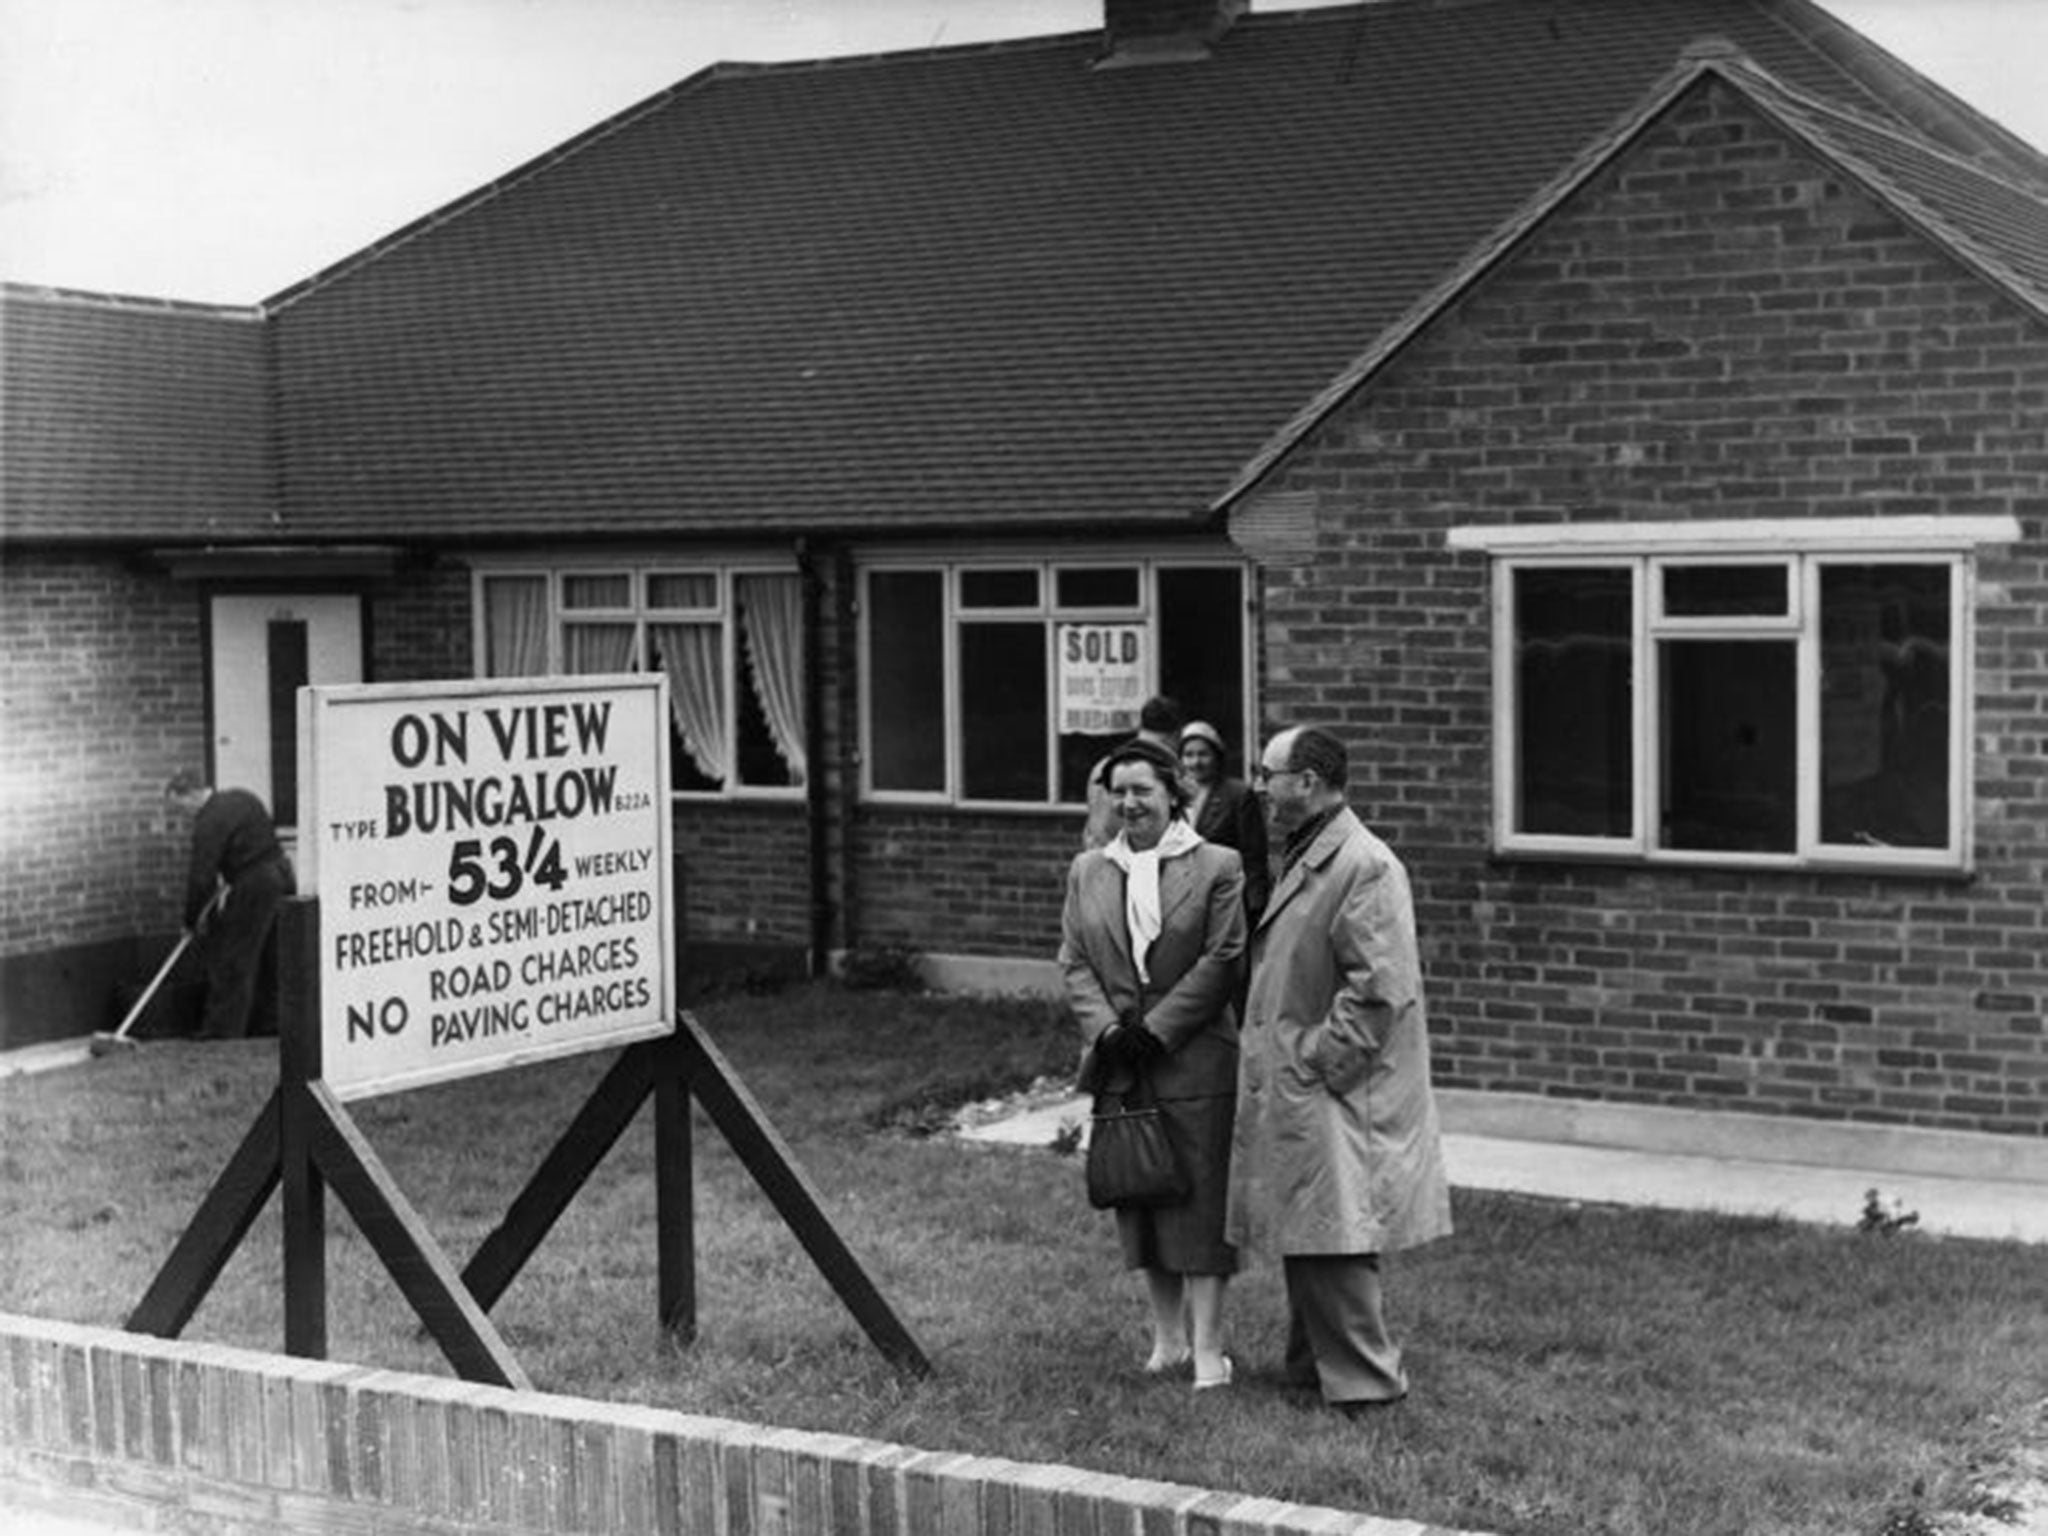 In praise of the bungalow: Why I love living in a low-rise | The